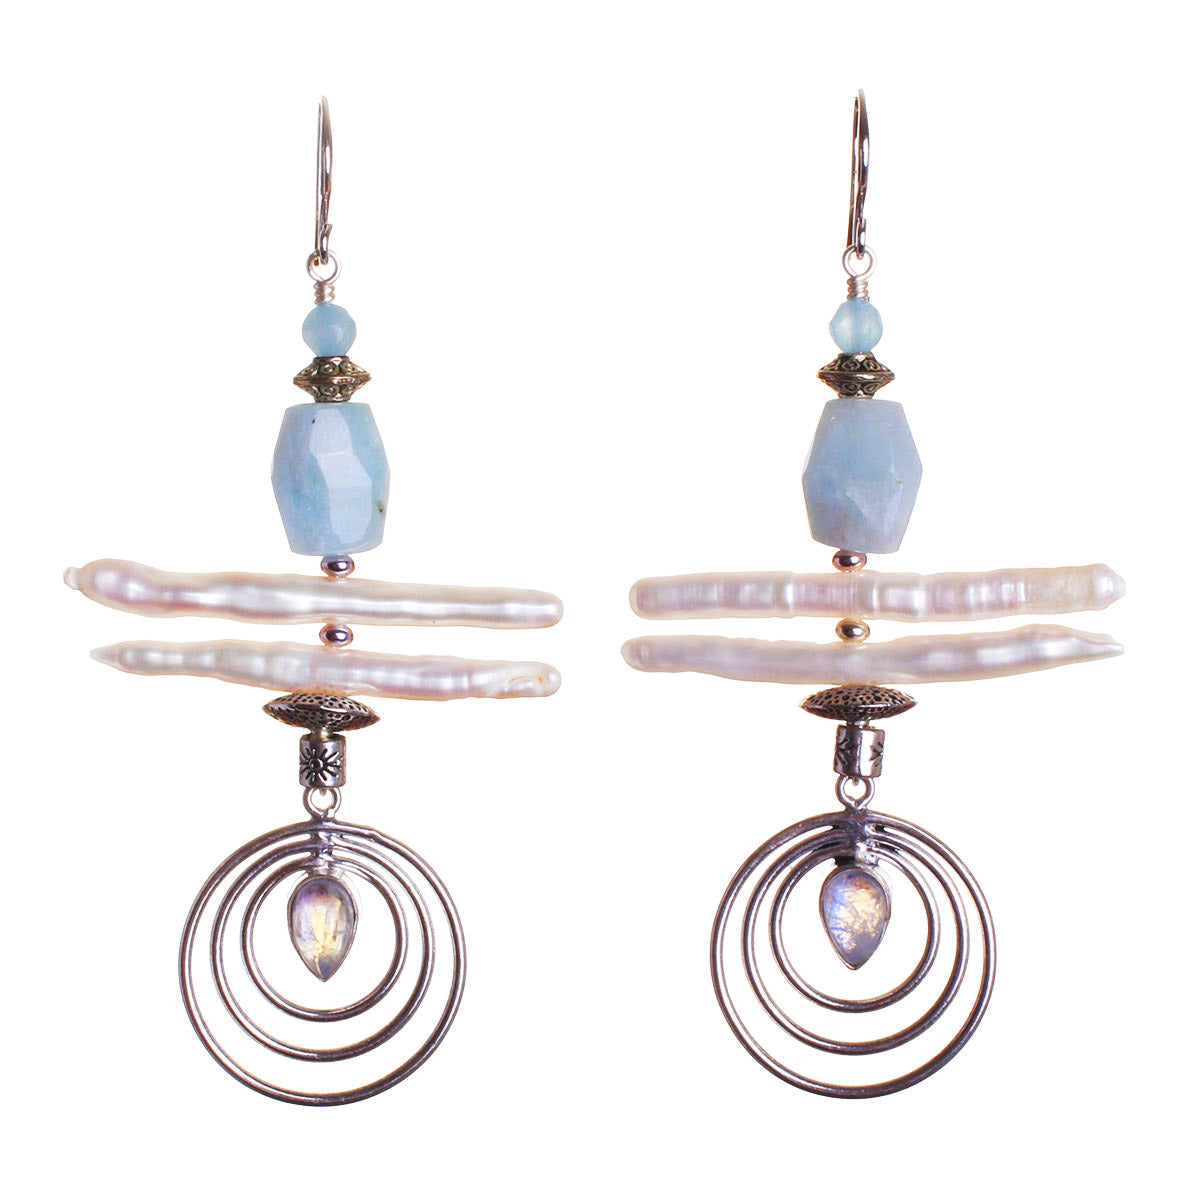 N°532 The Impeccable Moonstone Spy Statement Earrings